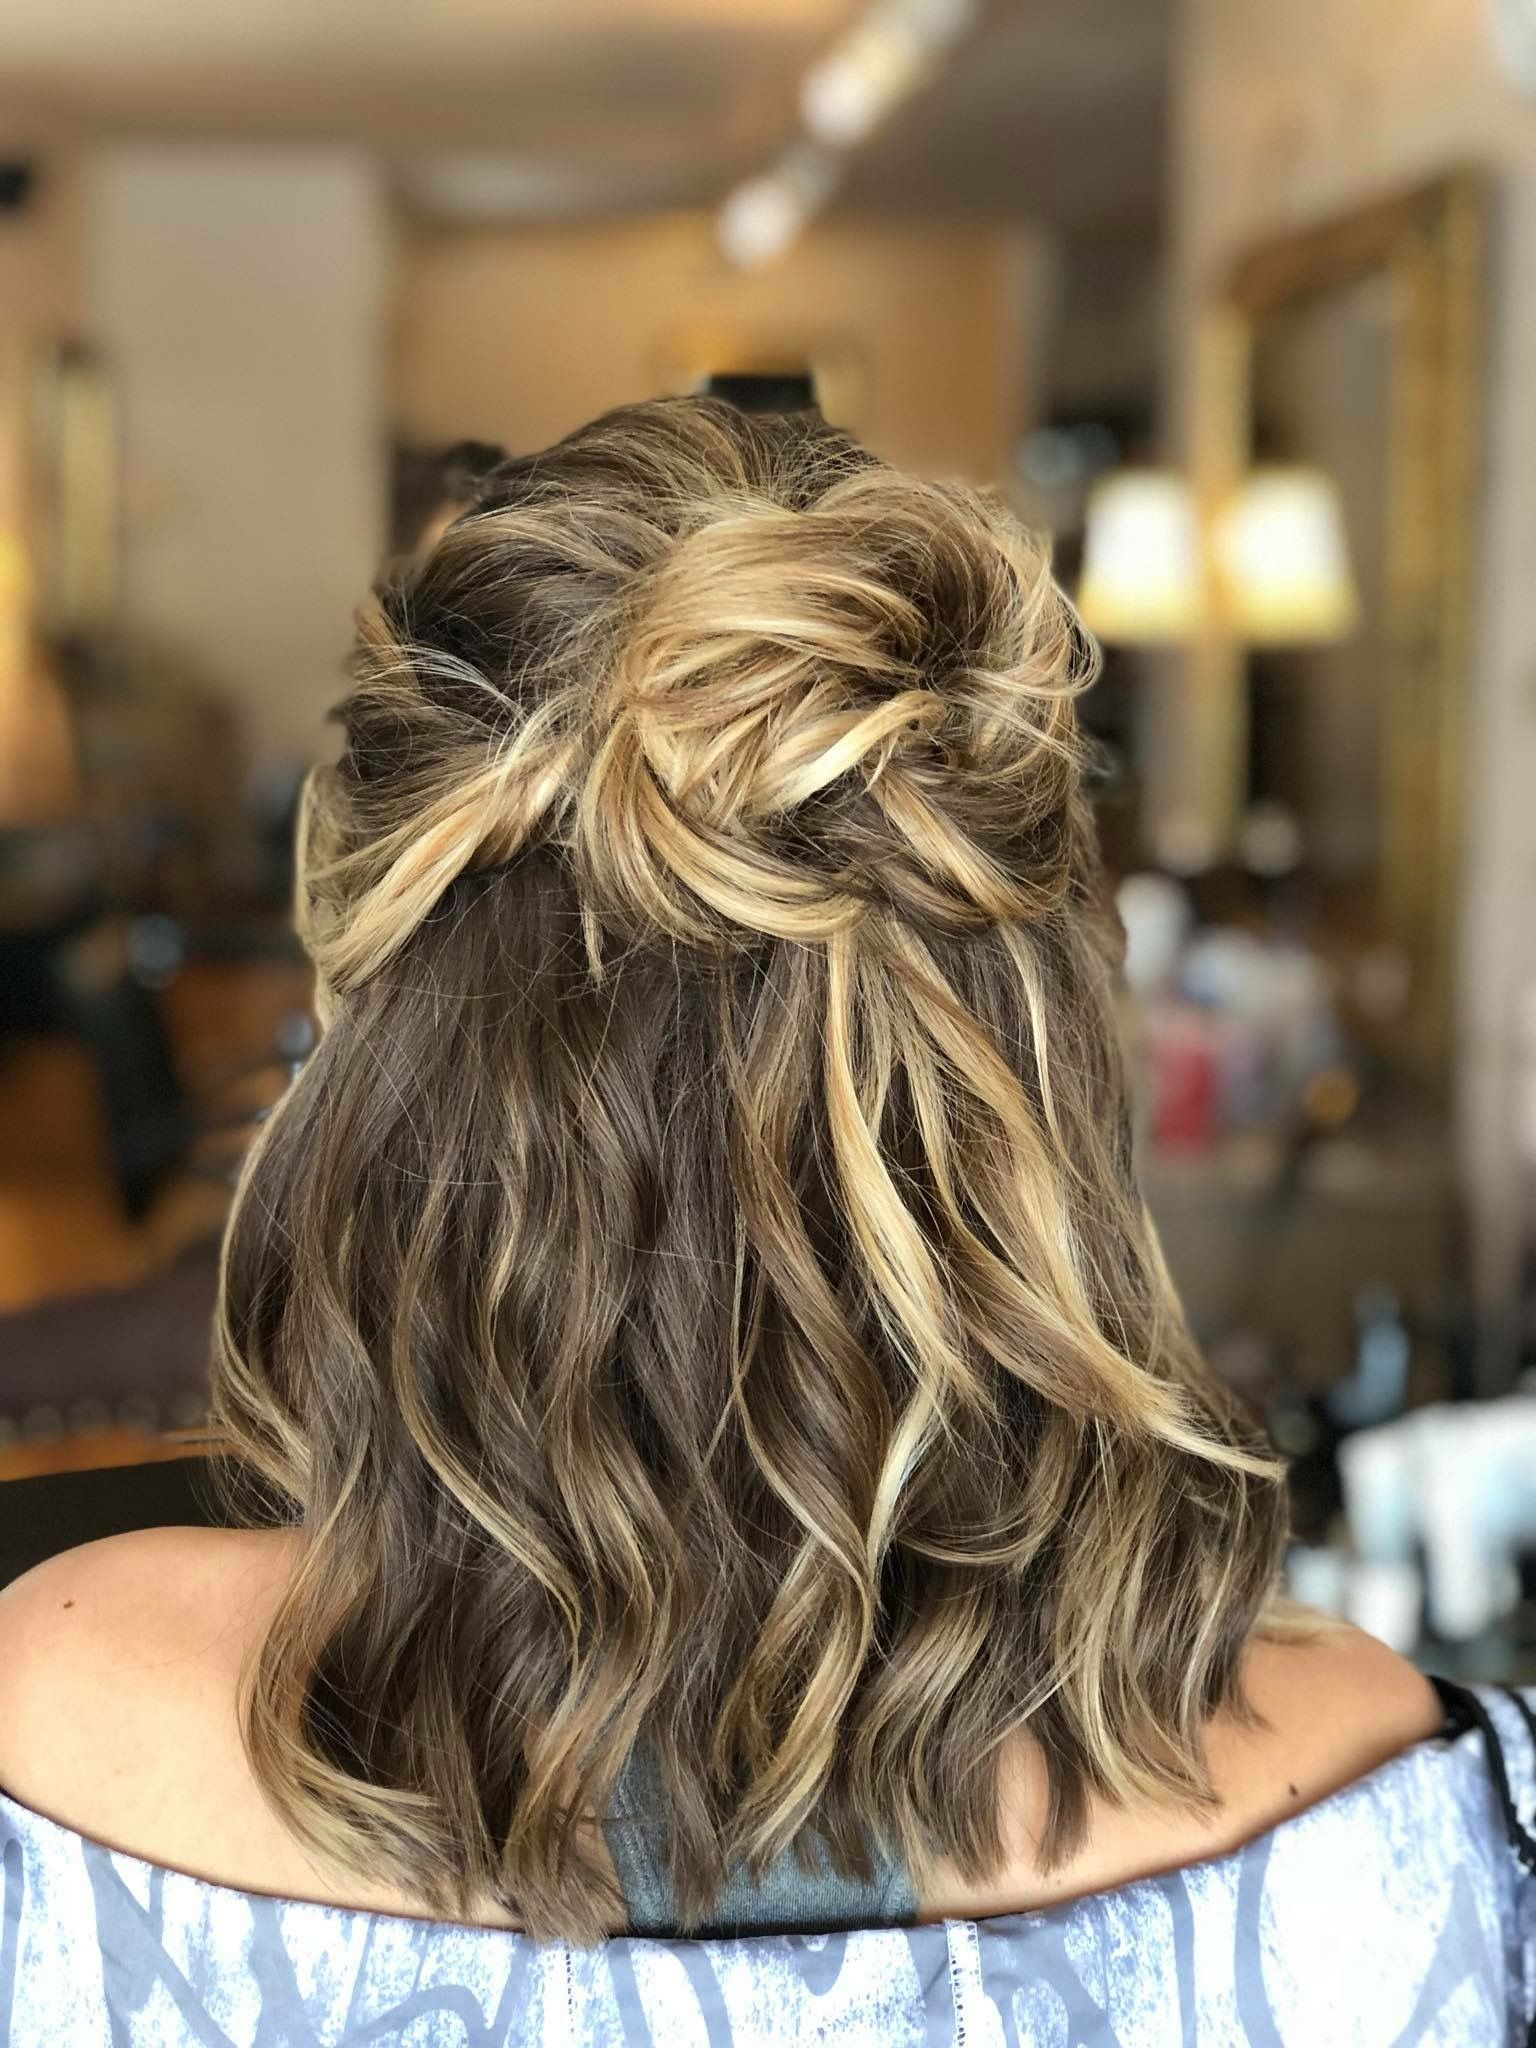 Prom Hair Half Up Half Down Curl Homecoming Bun Prom Hairstyles For Short Hair Dance Hairstyles Half Up Hair